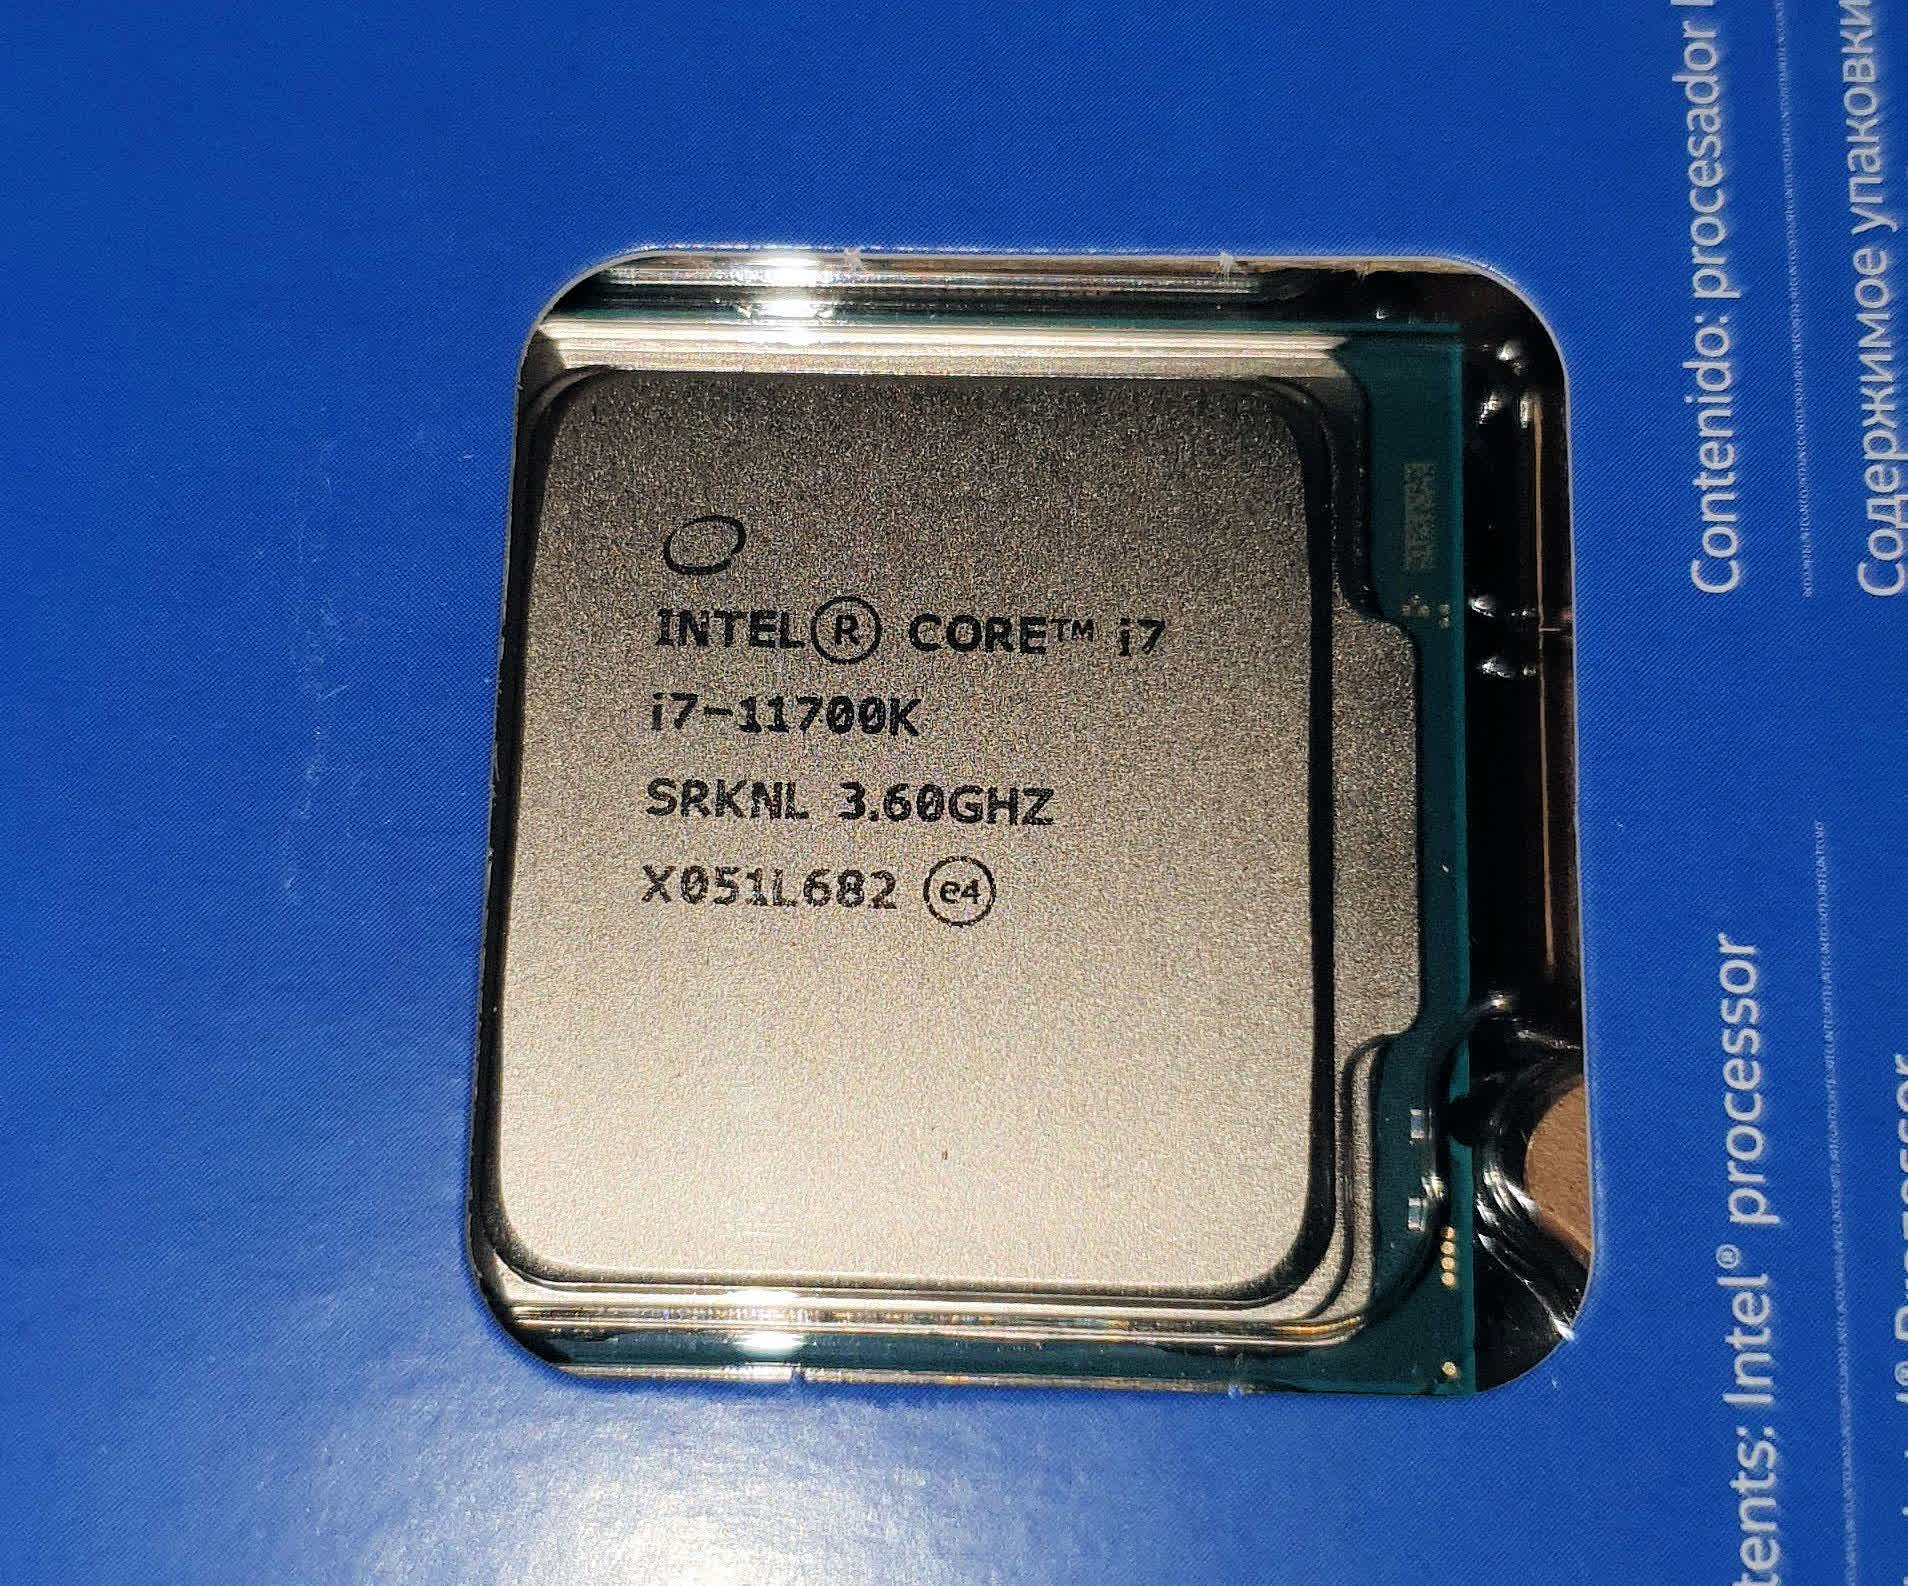 Intel's unreleased i7-11700K is being sold and shipped in Germany thumbnail